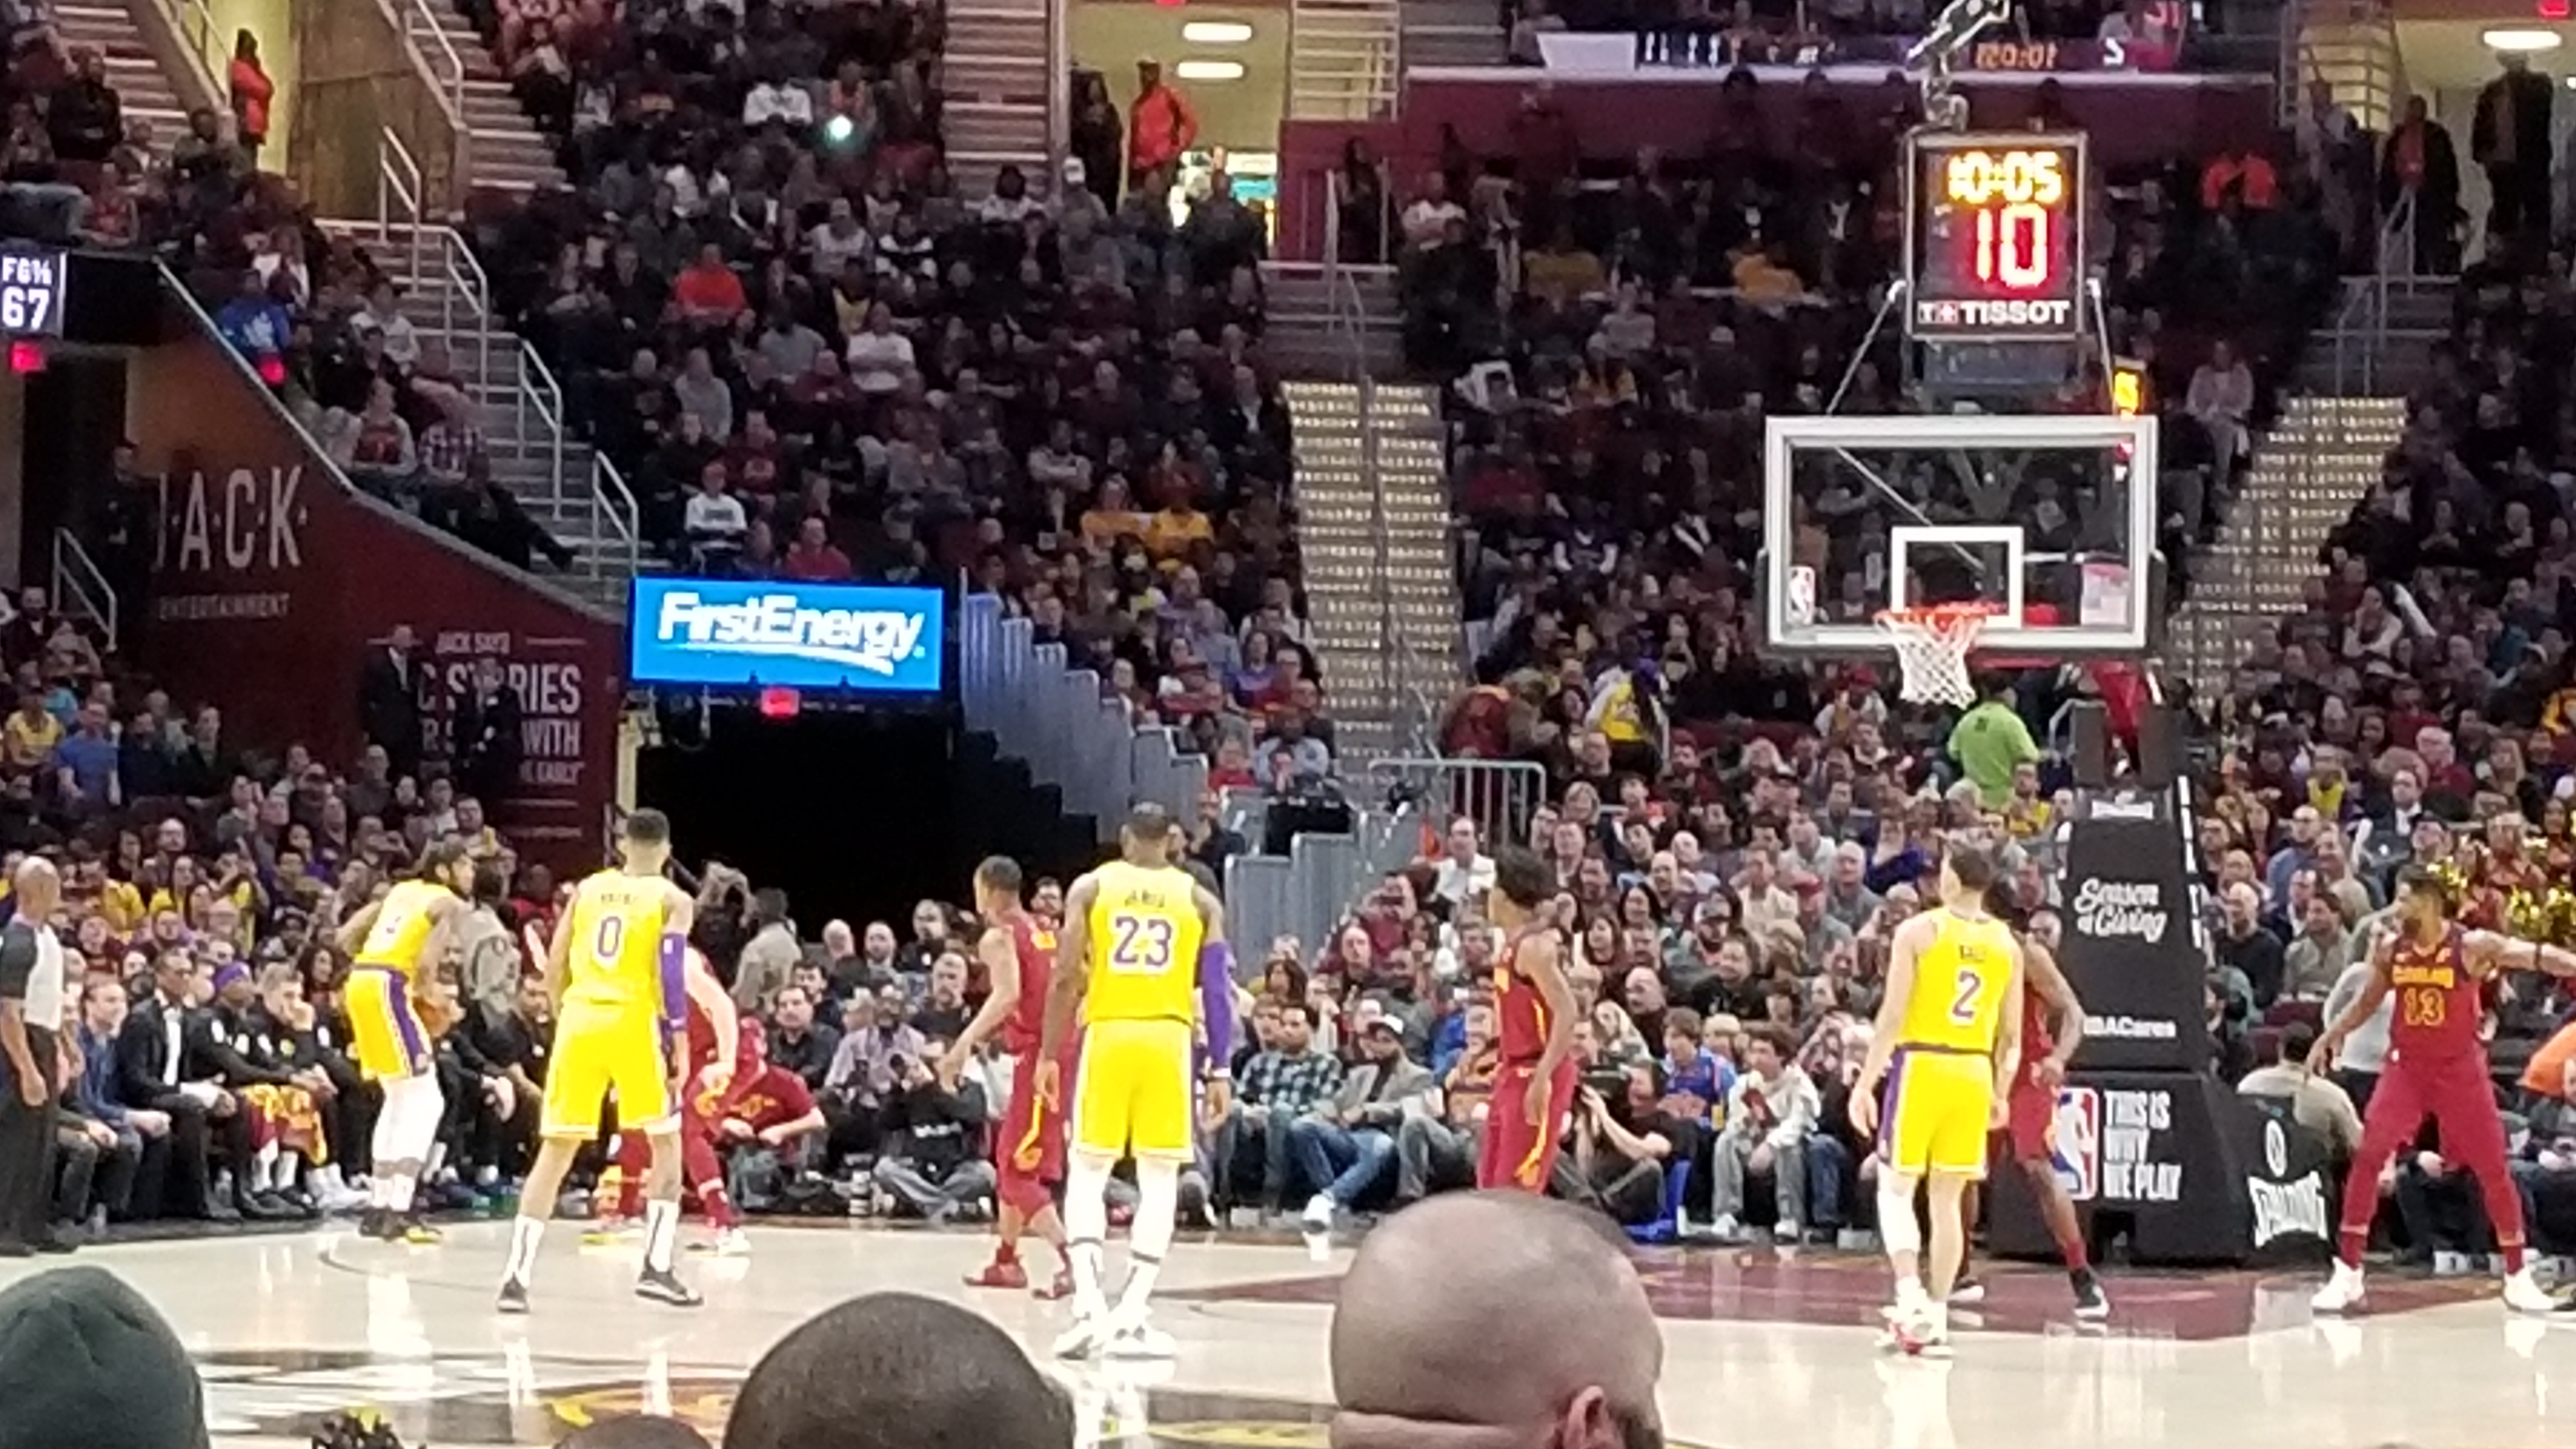 c7311da1a2f5 LeBron James receives standing ovation in return to Cleveland